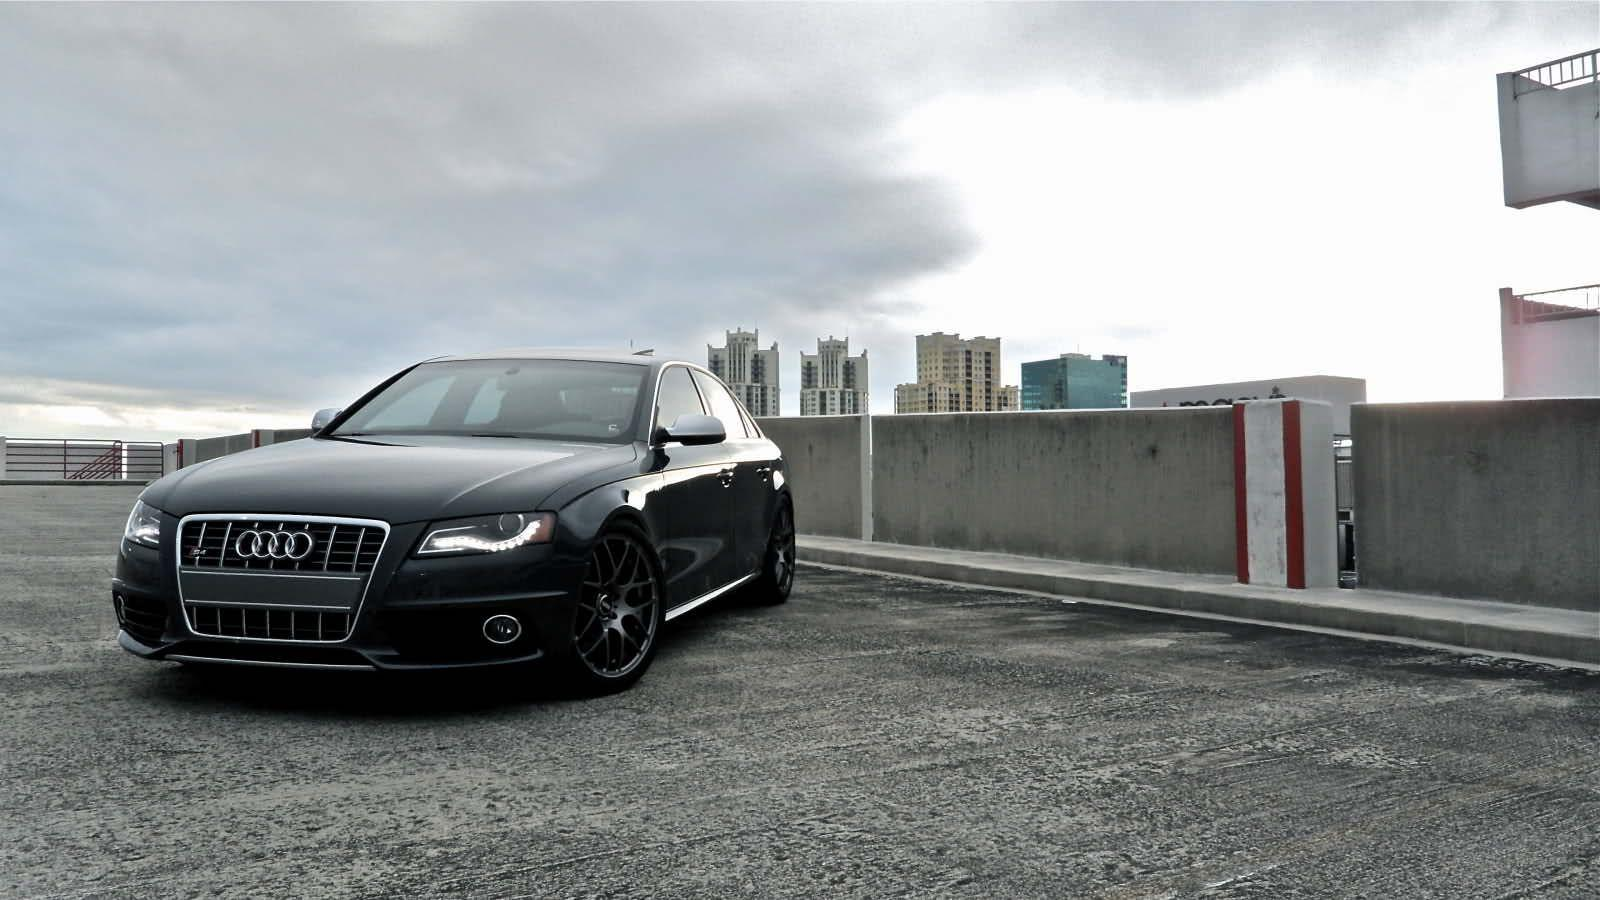 Audi A4 HD Wallpapers